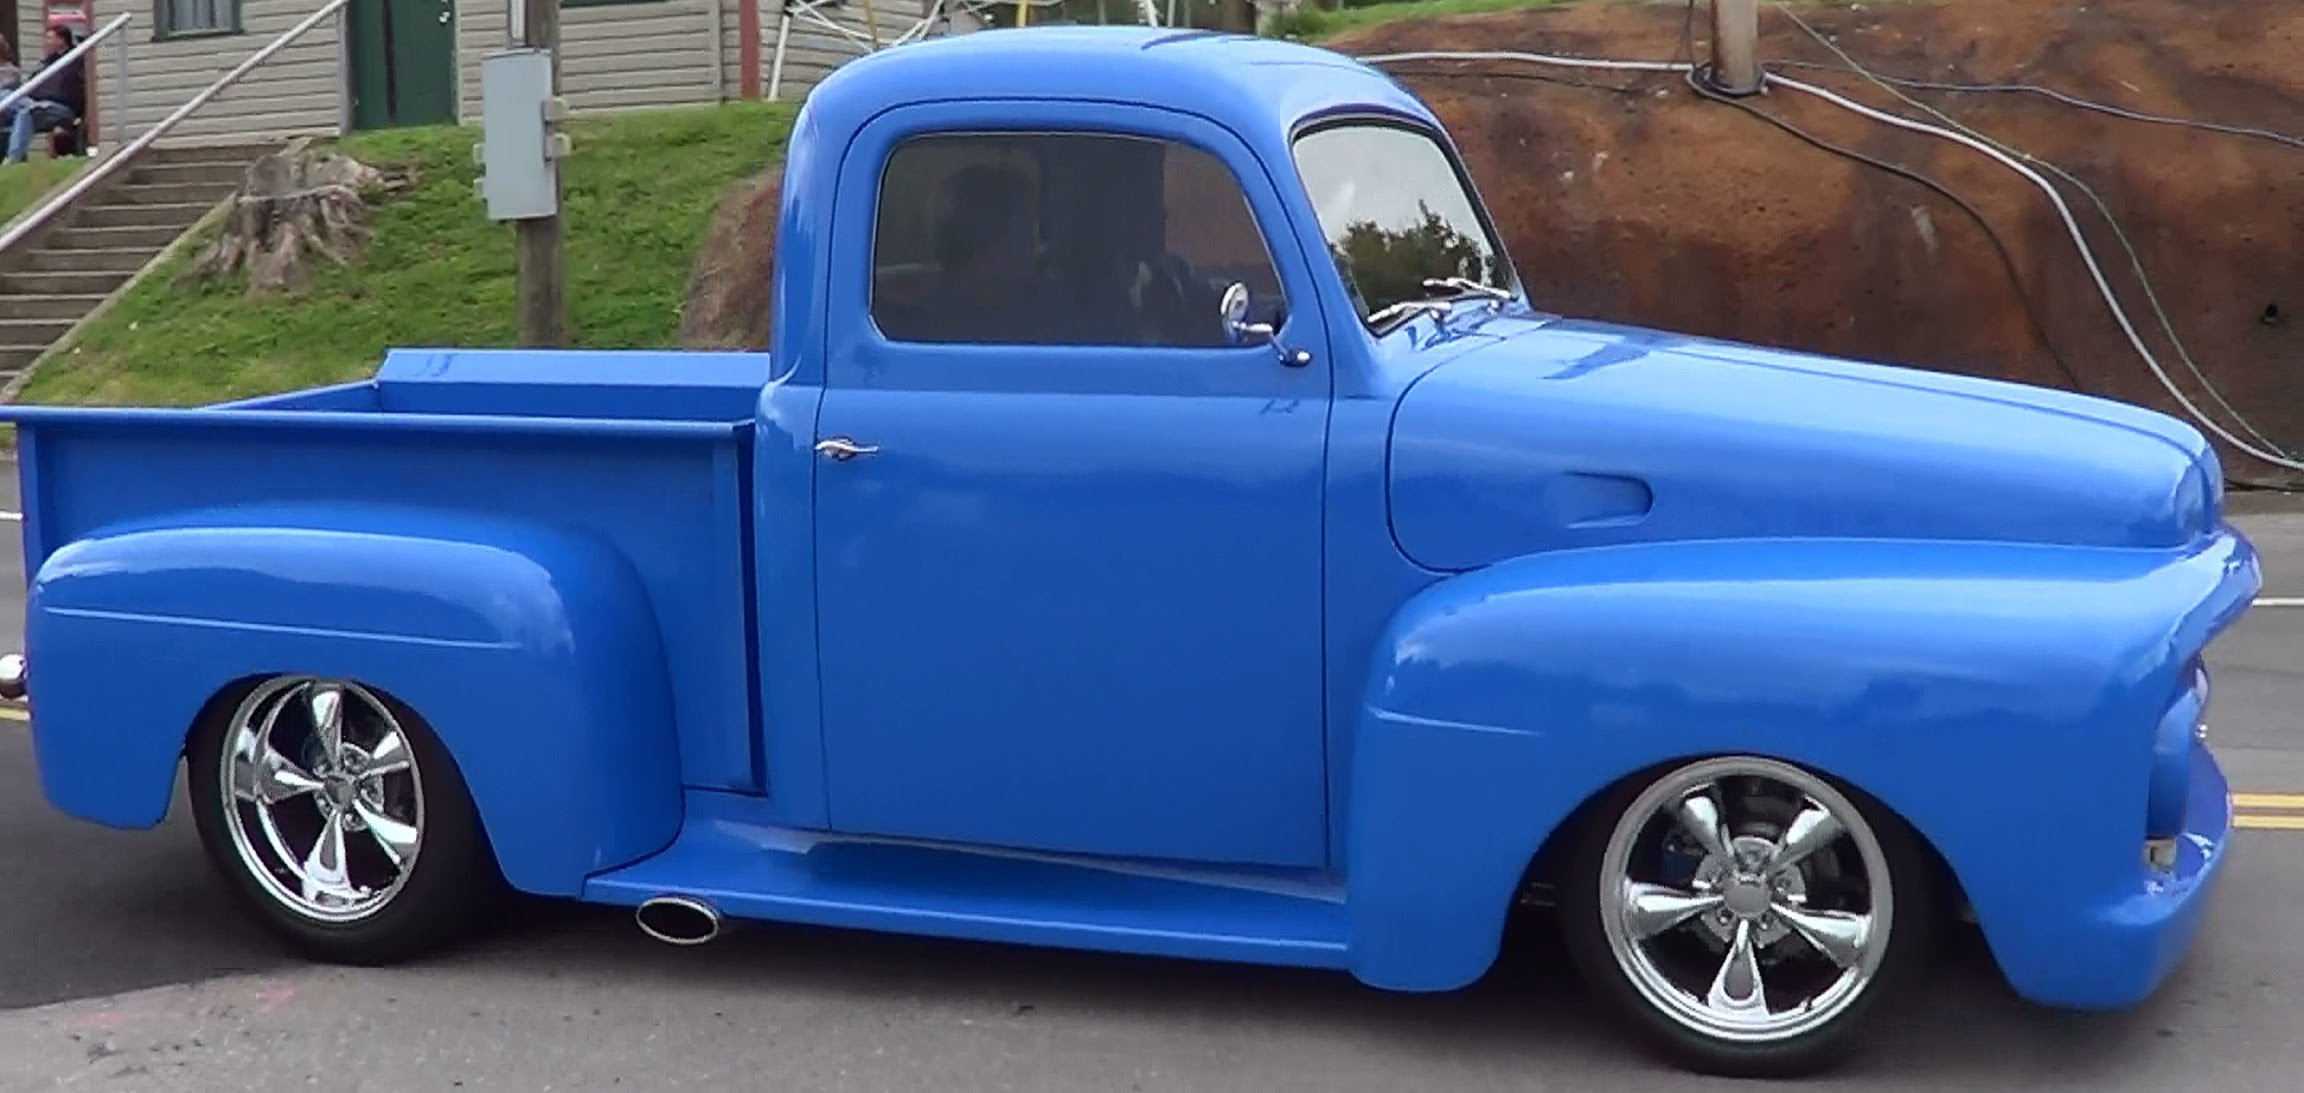 1952 ford f1 street truck scottiedtv coolest cars on the web